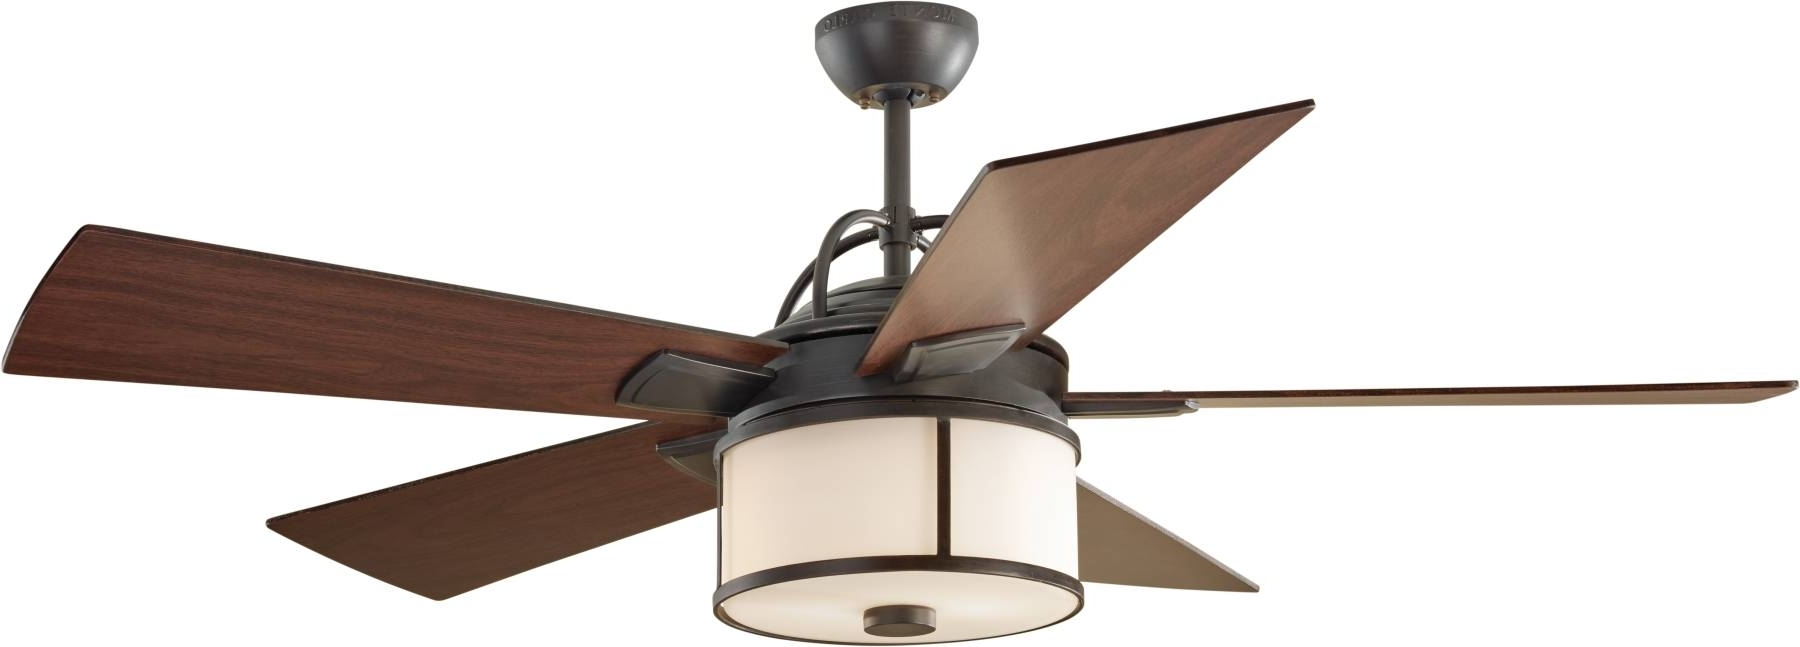 Replacement Globes For Ceiling Fan – Pixball With Most Current Outdoor Ceiling Fans With Light Globes (View 20 of 20)